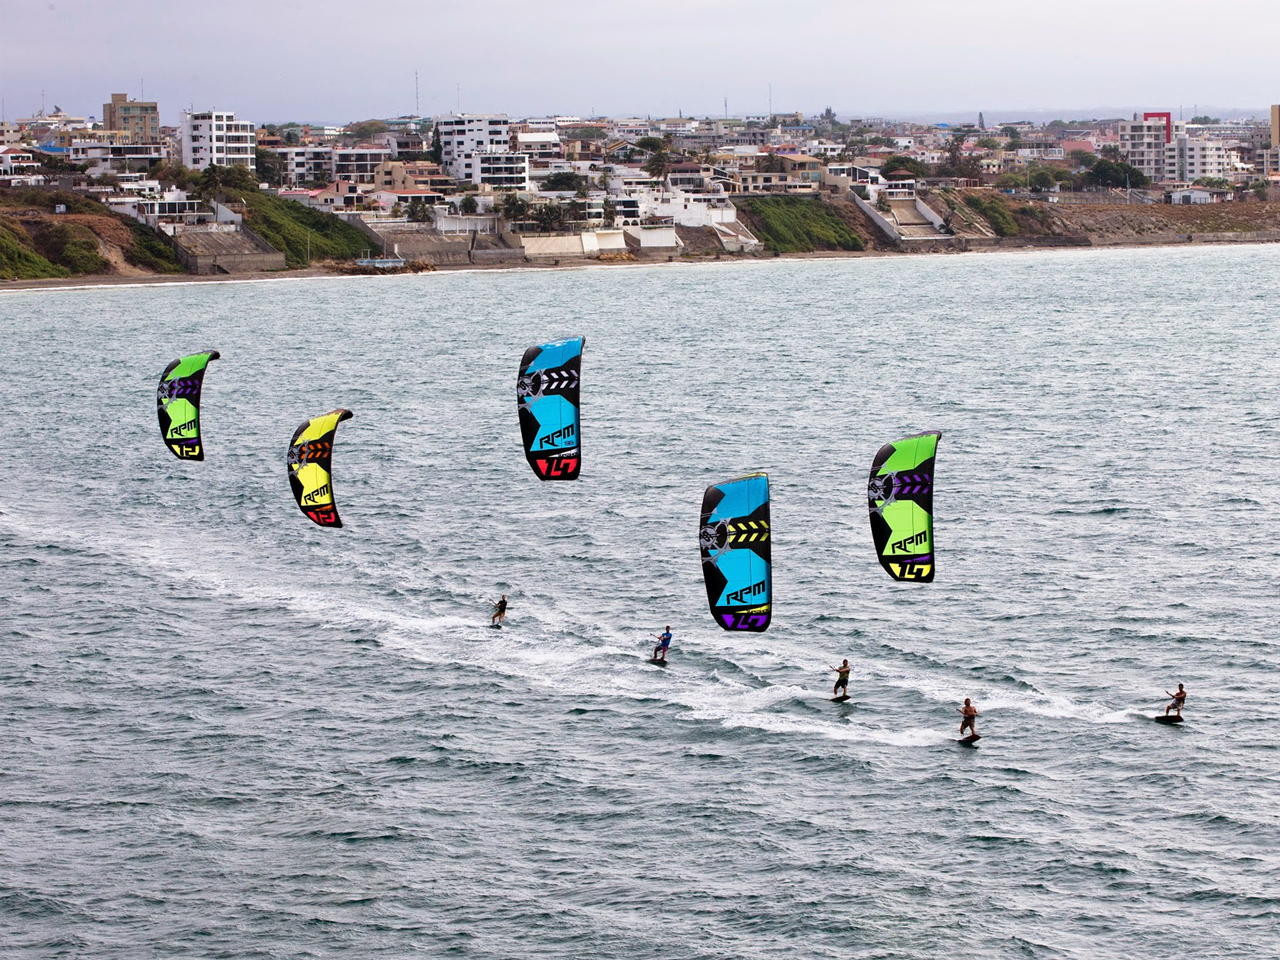 kitesurf wallpaper image - Slingshot RPM riders taking control of the bay - in resolution: Standard 4:3 1280 X 960